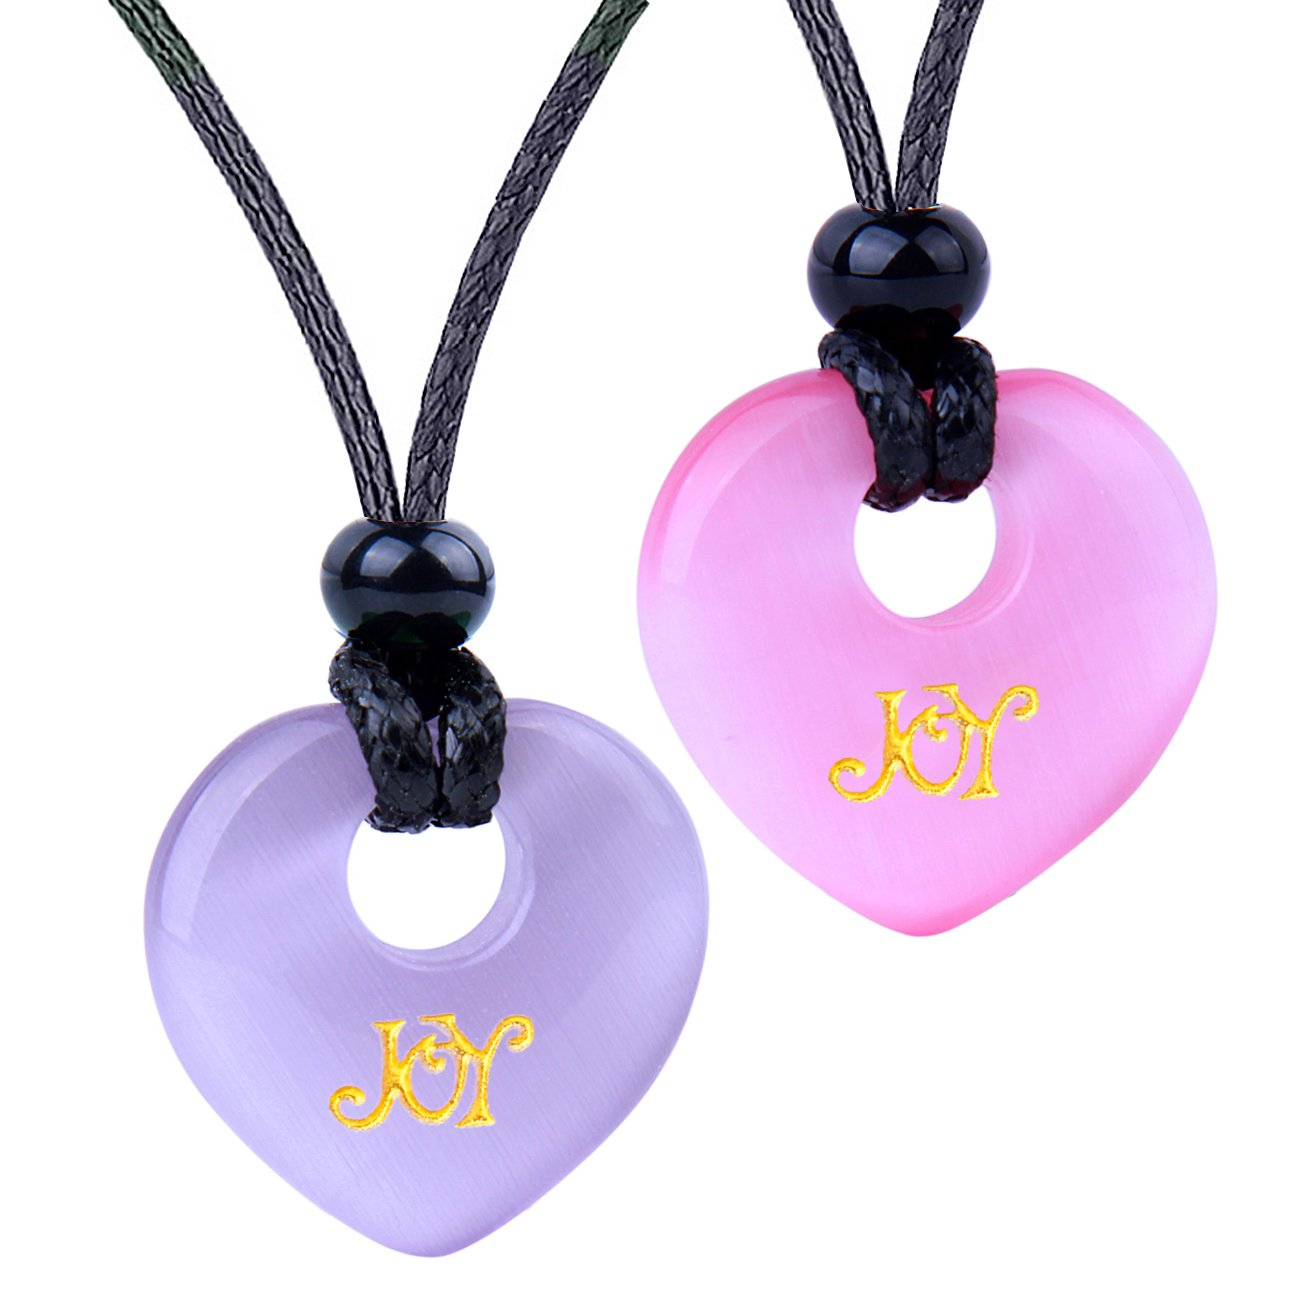 Inspirational Heart Donut Amulets Joy and Love Powers Couples BFF Purple Pink Simulated Cat Eye Necklaces